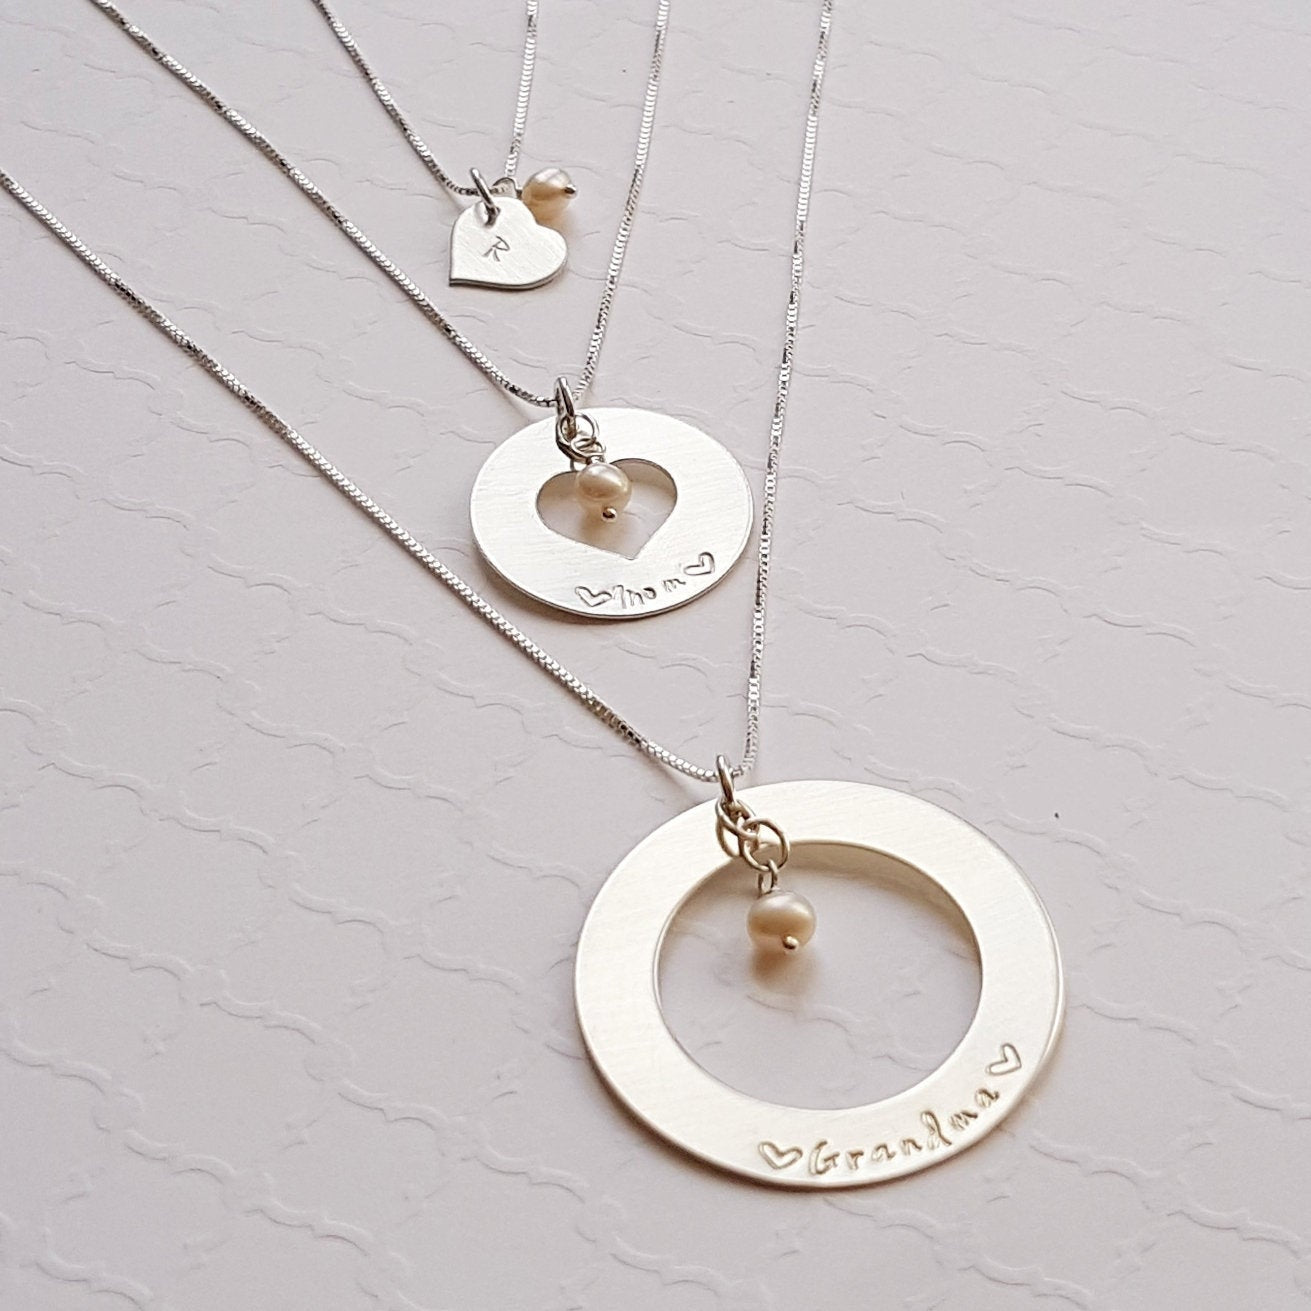 three generation sterling silver cut-out necklace set with freshwater pearls for grandma, mom and daughter